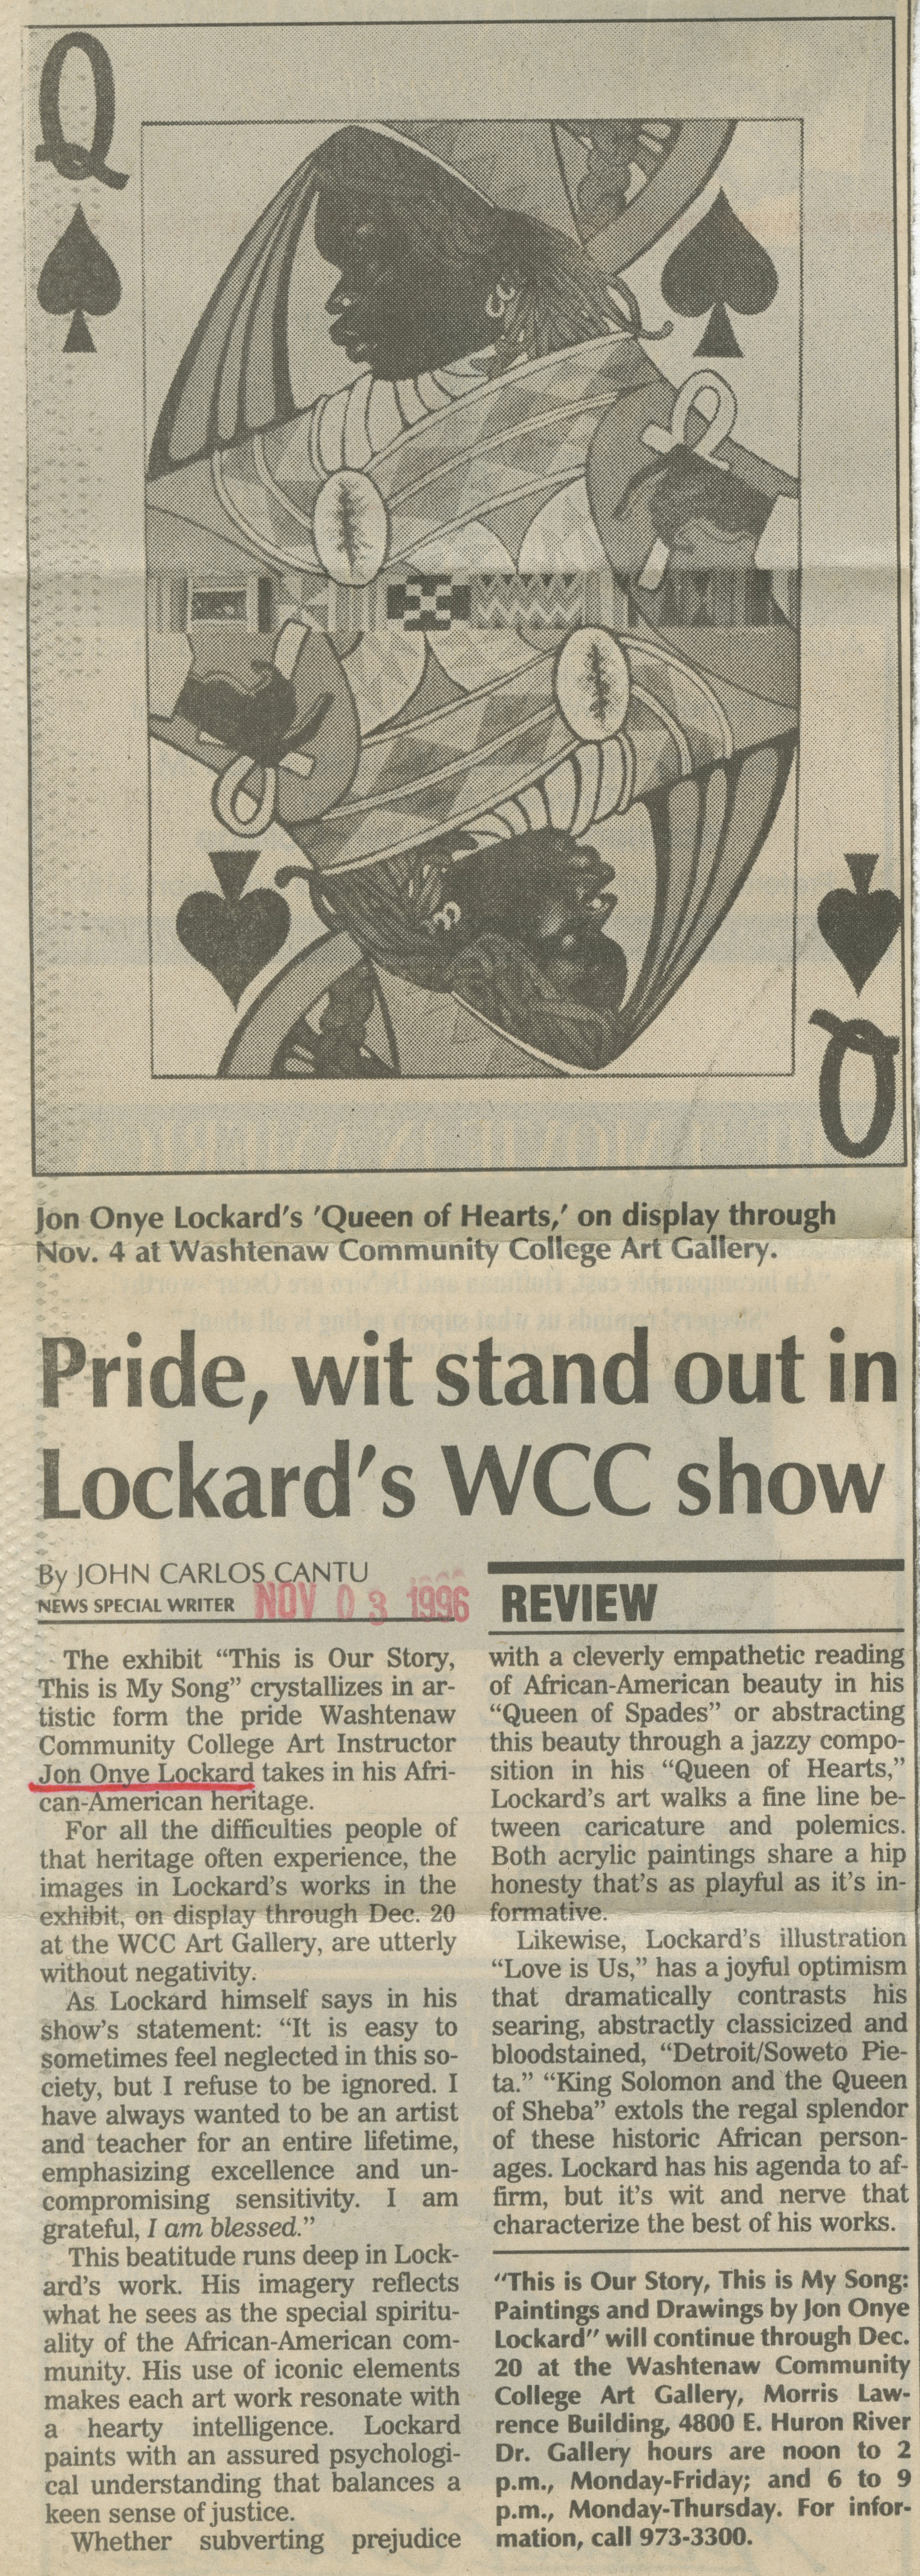 Pride, wit stand out in Lockard's WCC show image